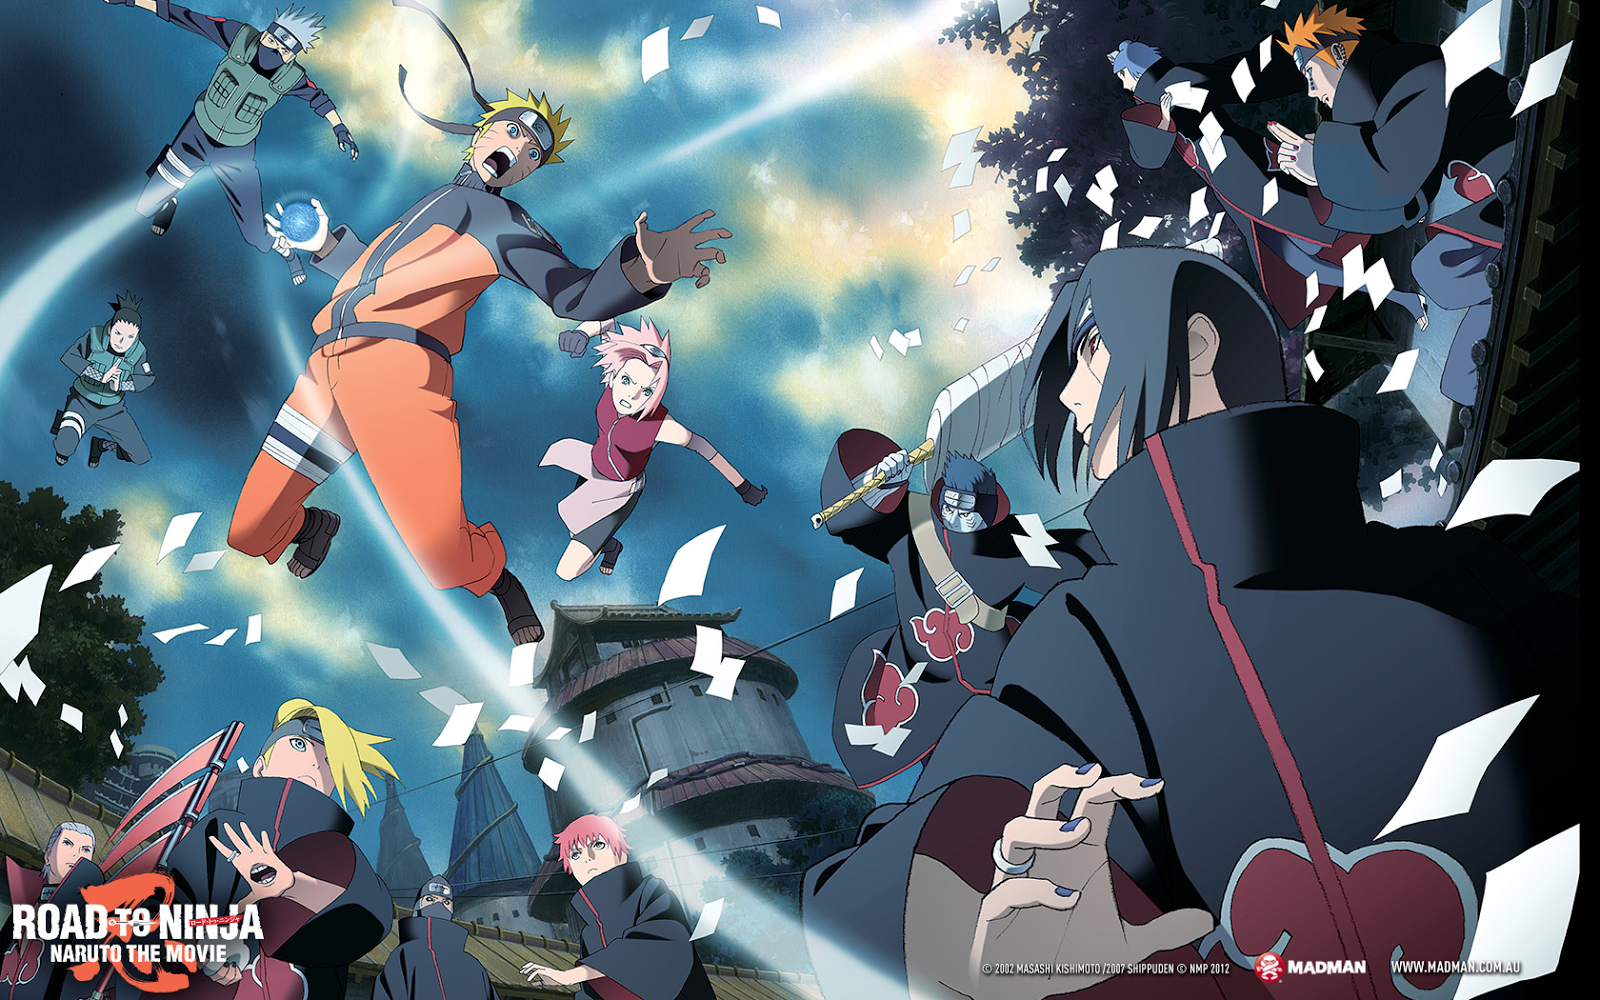 Naruto Shippuden HD Wallpaper Pack | Manga Council